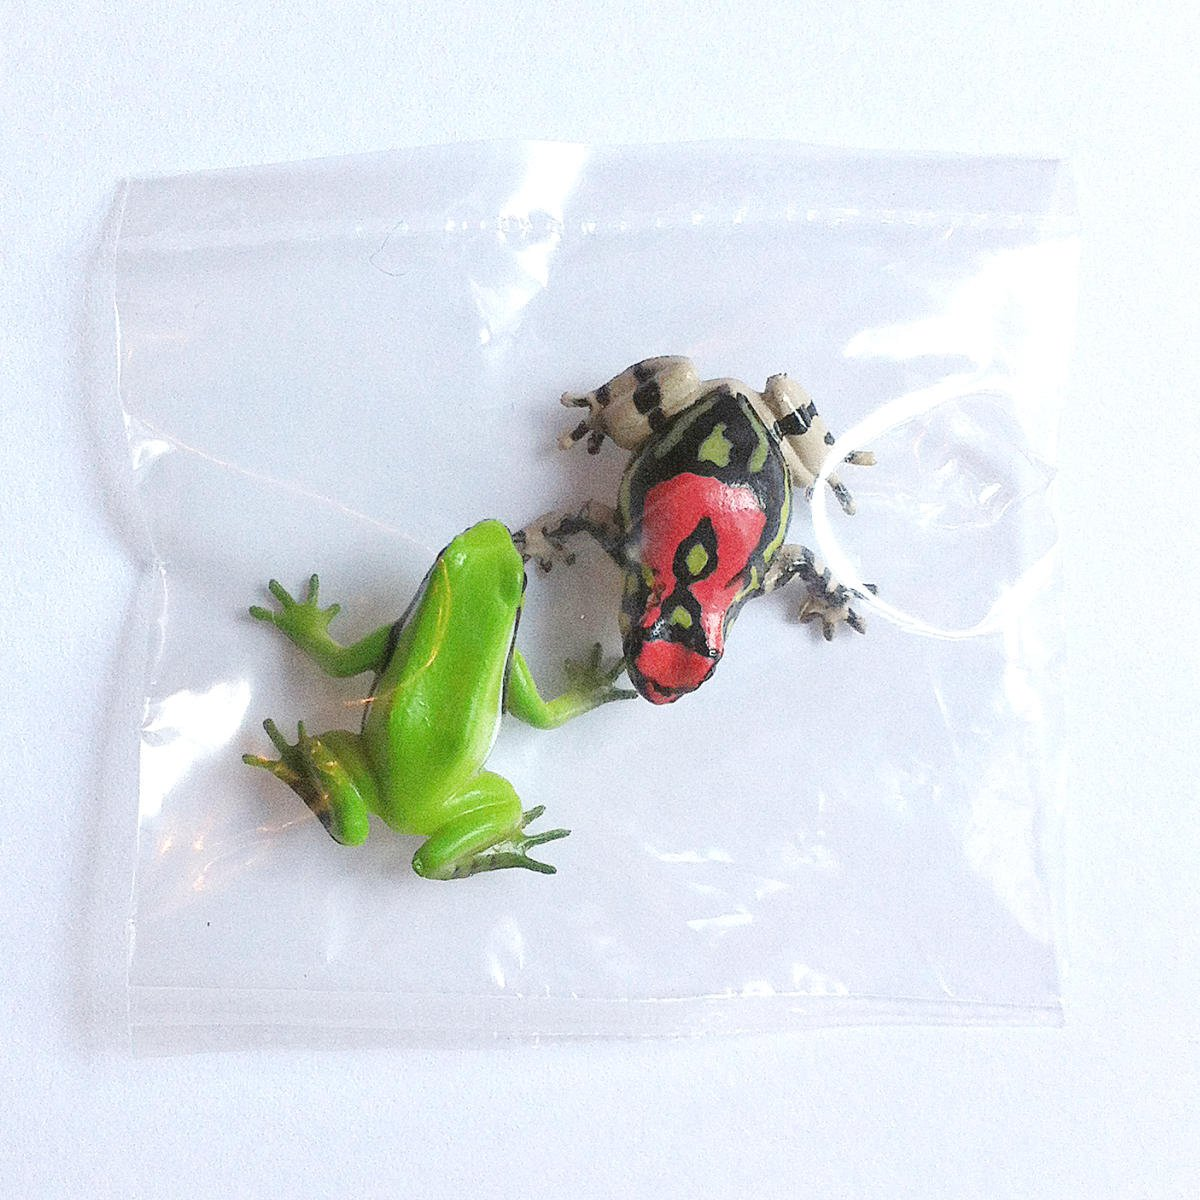 Primary Colors Amphibian Frog Picture Book - Rainbow Burrowing Frog & Japanese Tree Frog - Yujin